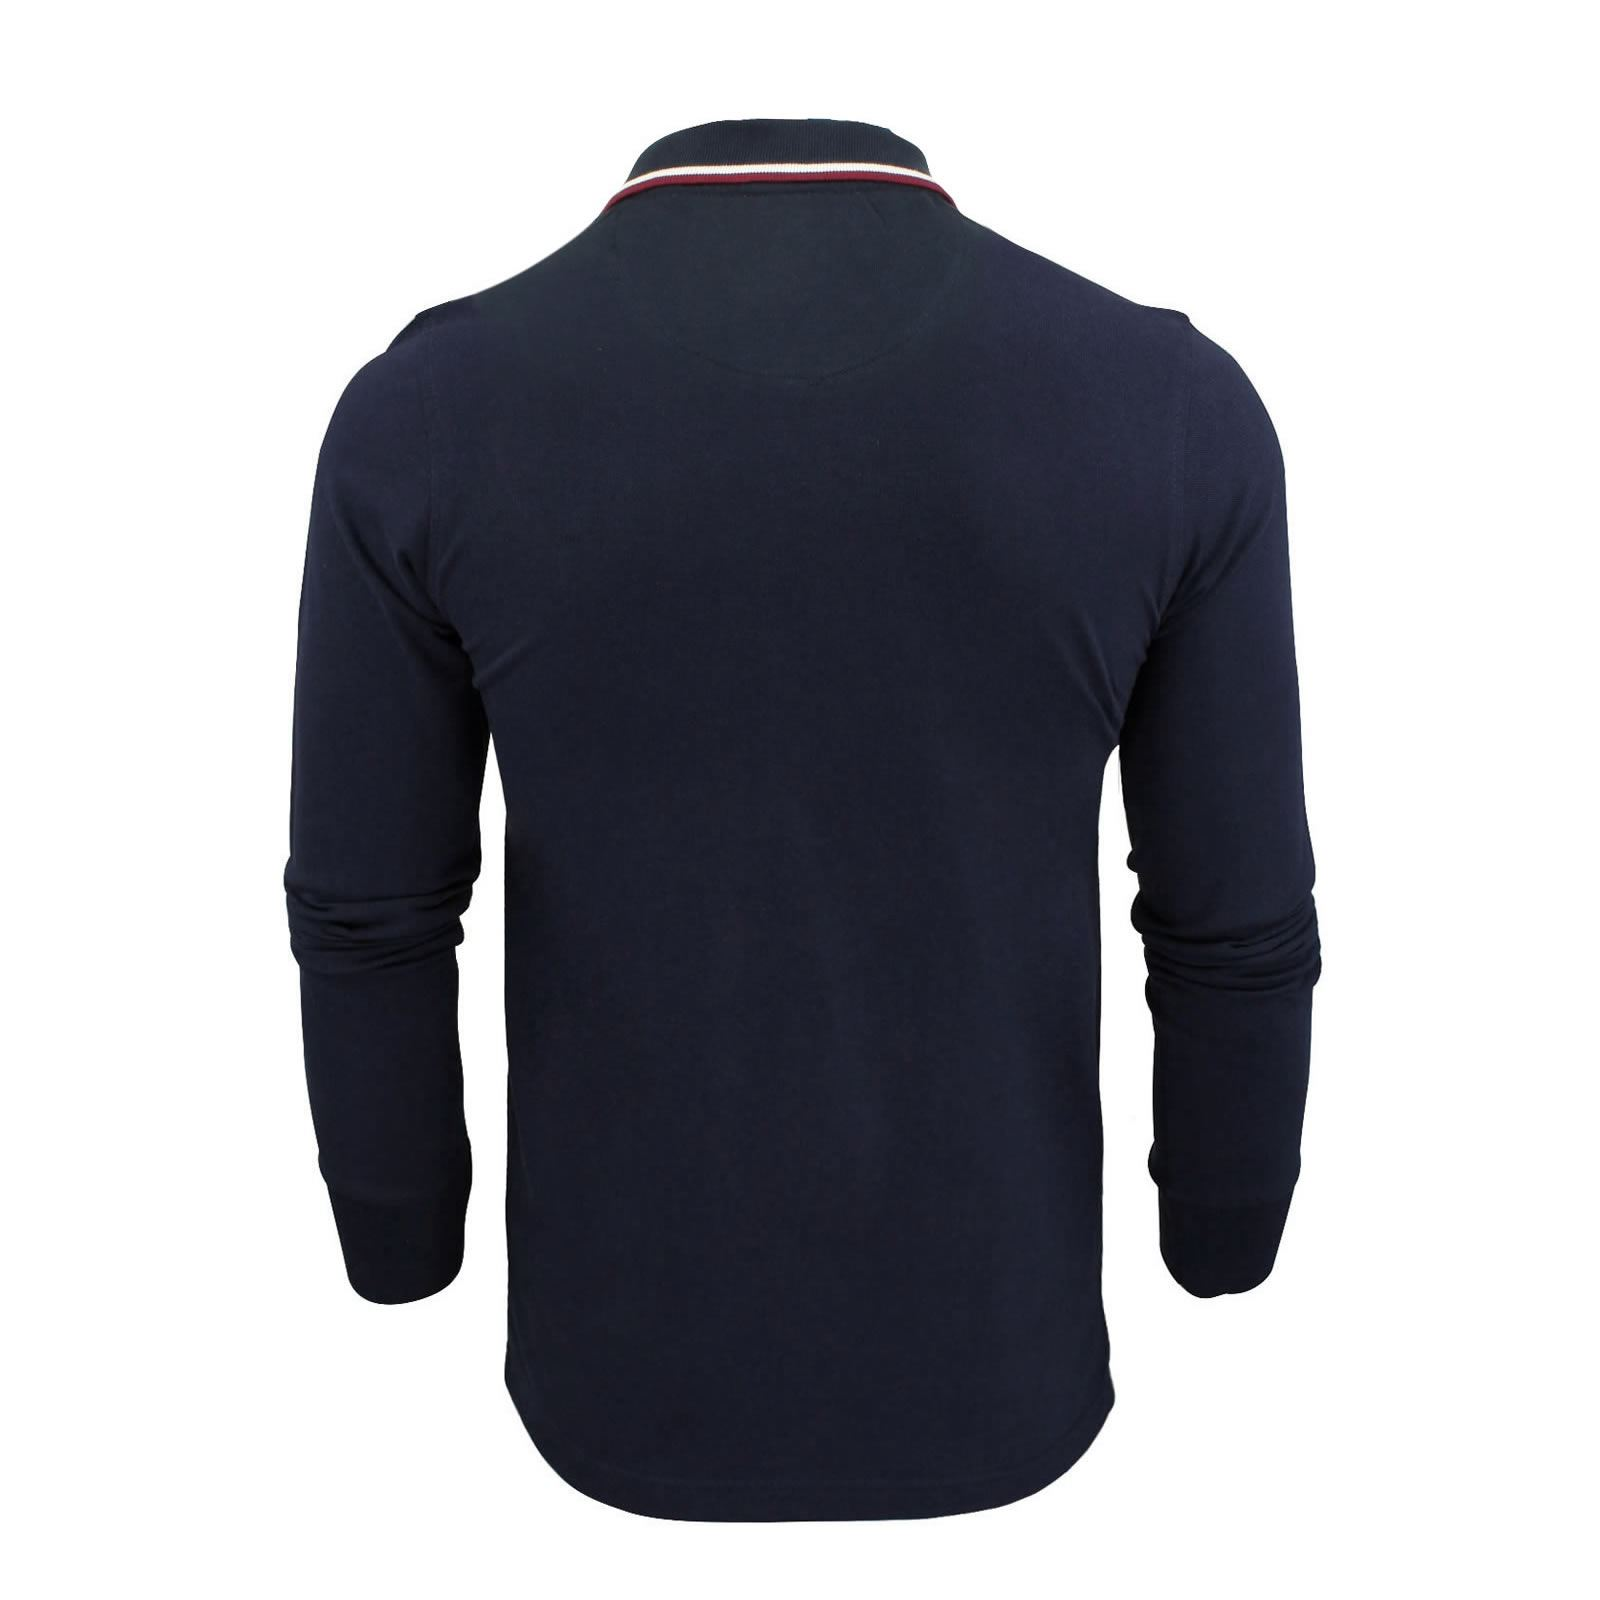 Mens-Polo-T-Shirt-Brave-Soul-Lincoln-Long-Sleeve-Cotton-Pique-Casual-Top thumbnail 46